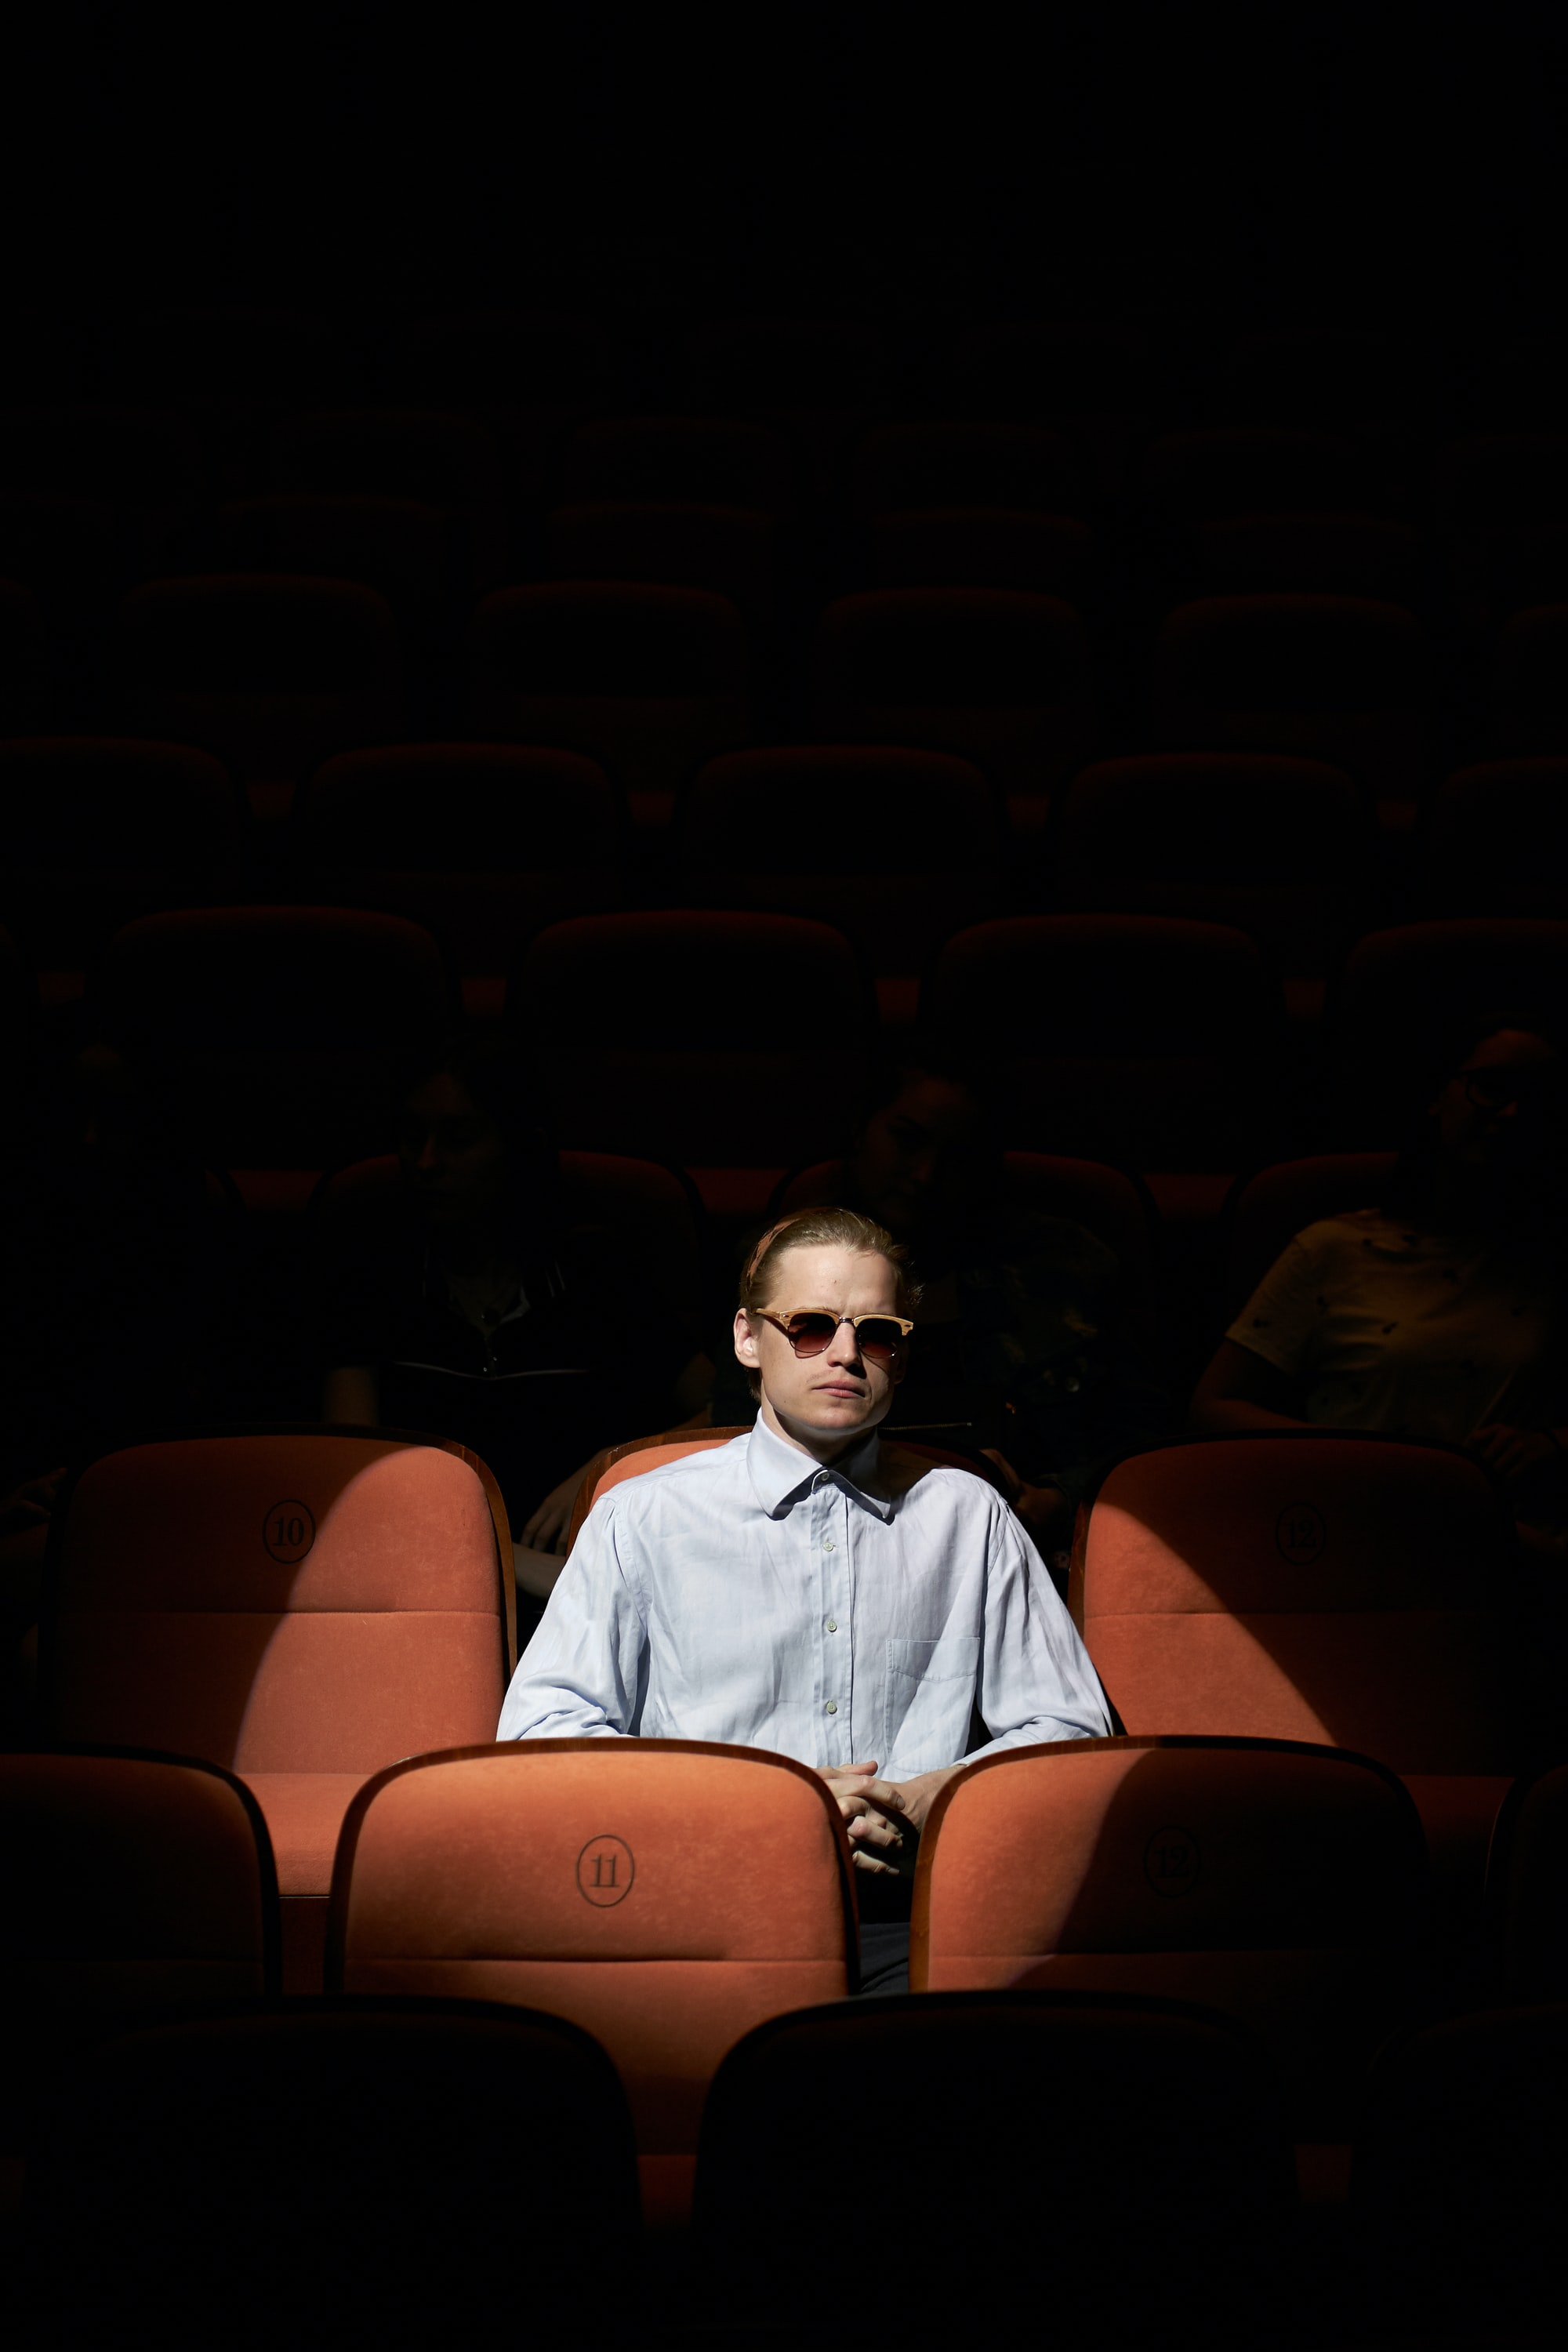 A lone man sitting under the spotlight in the theatre hall.